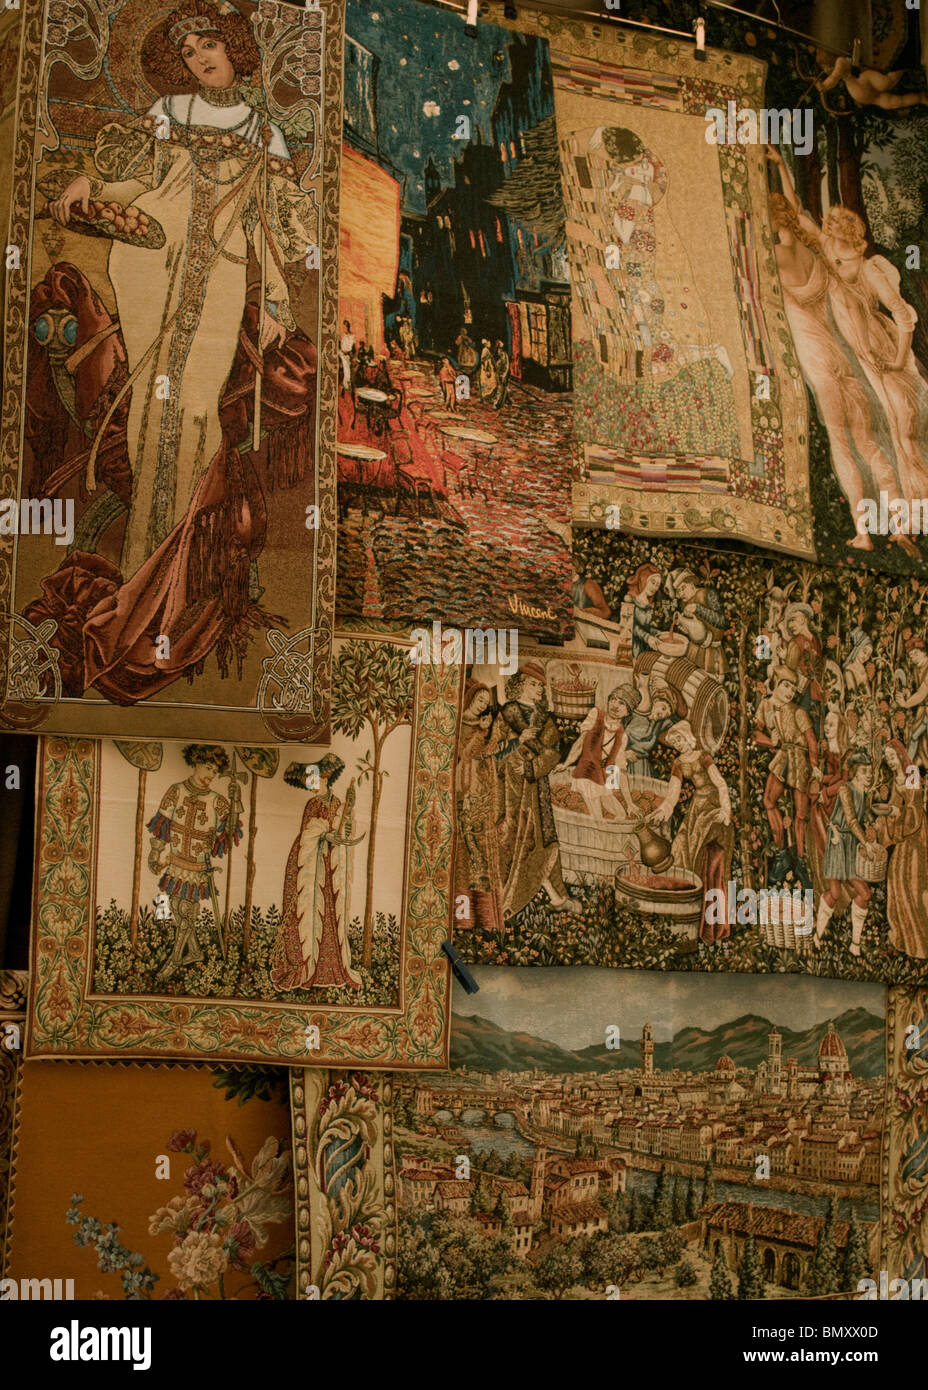 Tapestry in the Mercato Nuovo, 16th century market, in Florence, Italy - Stock Image